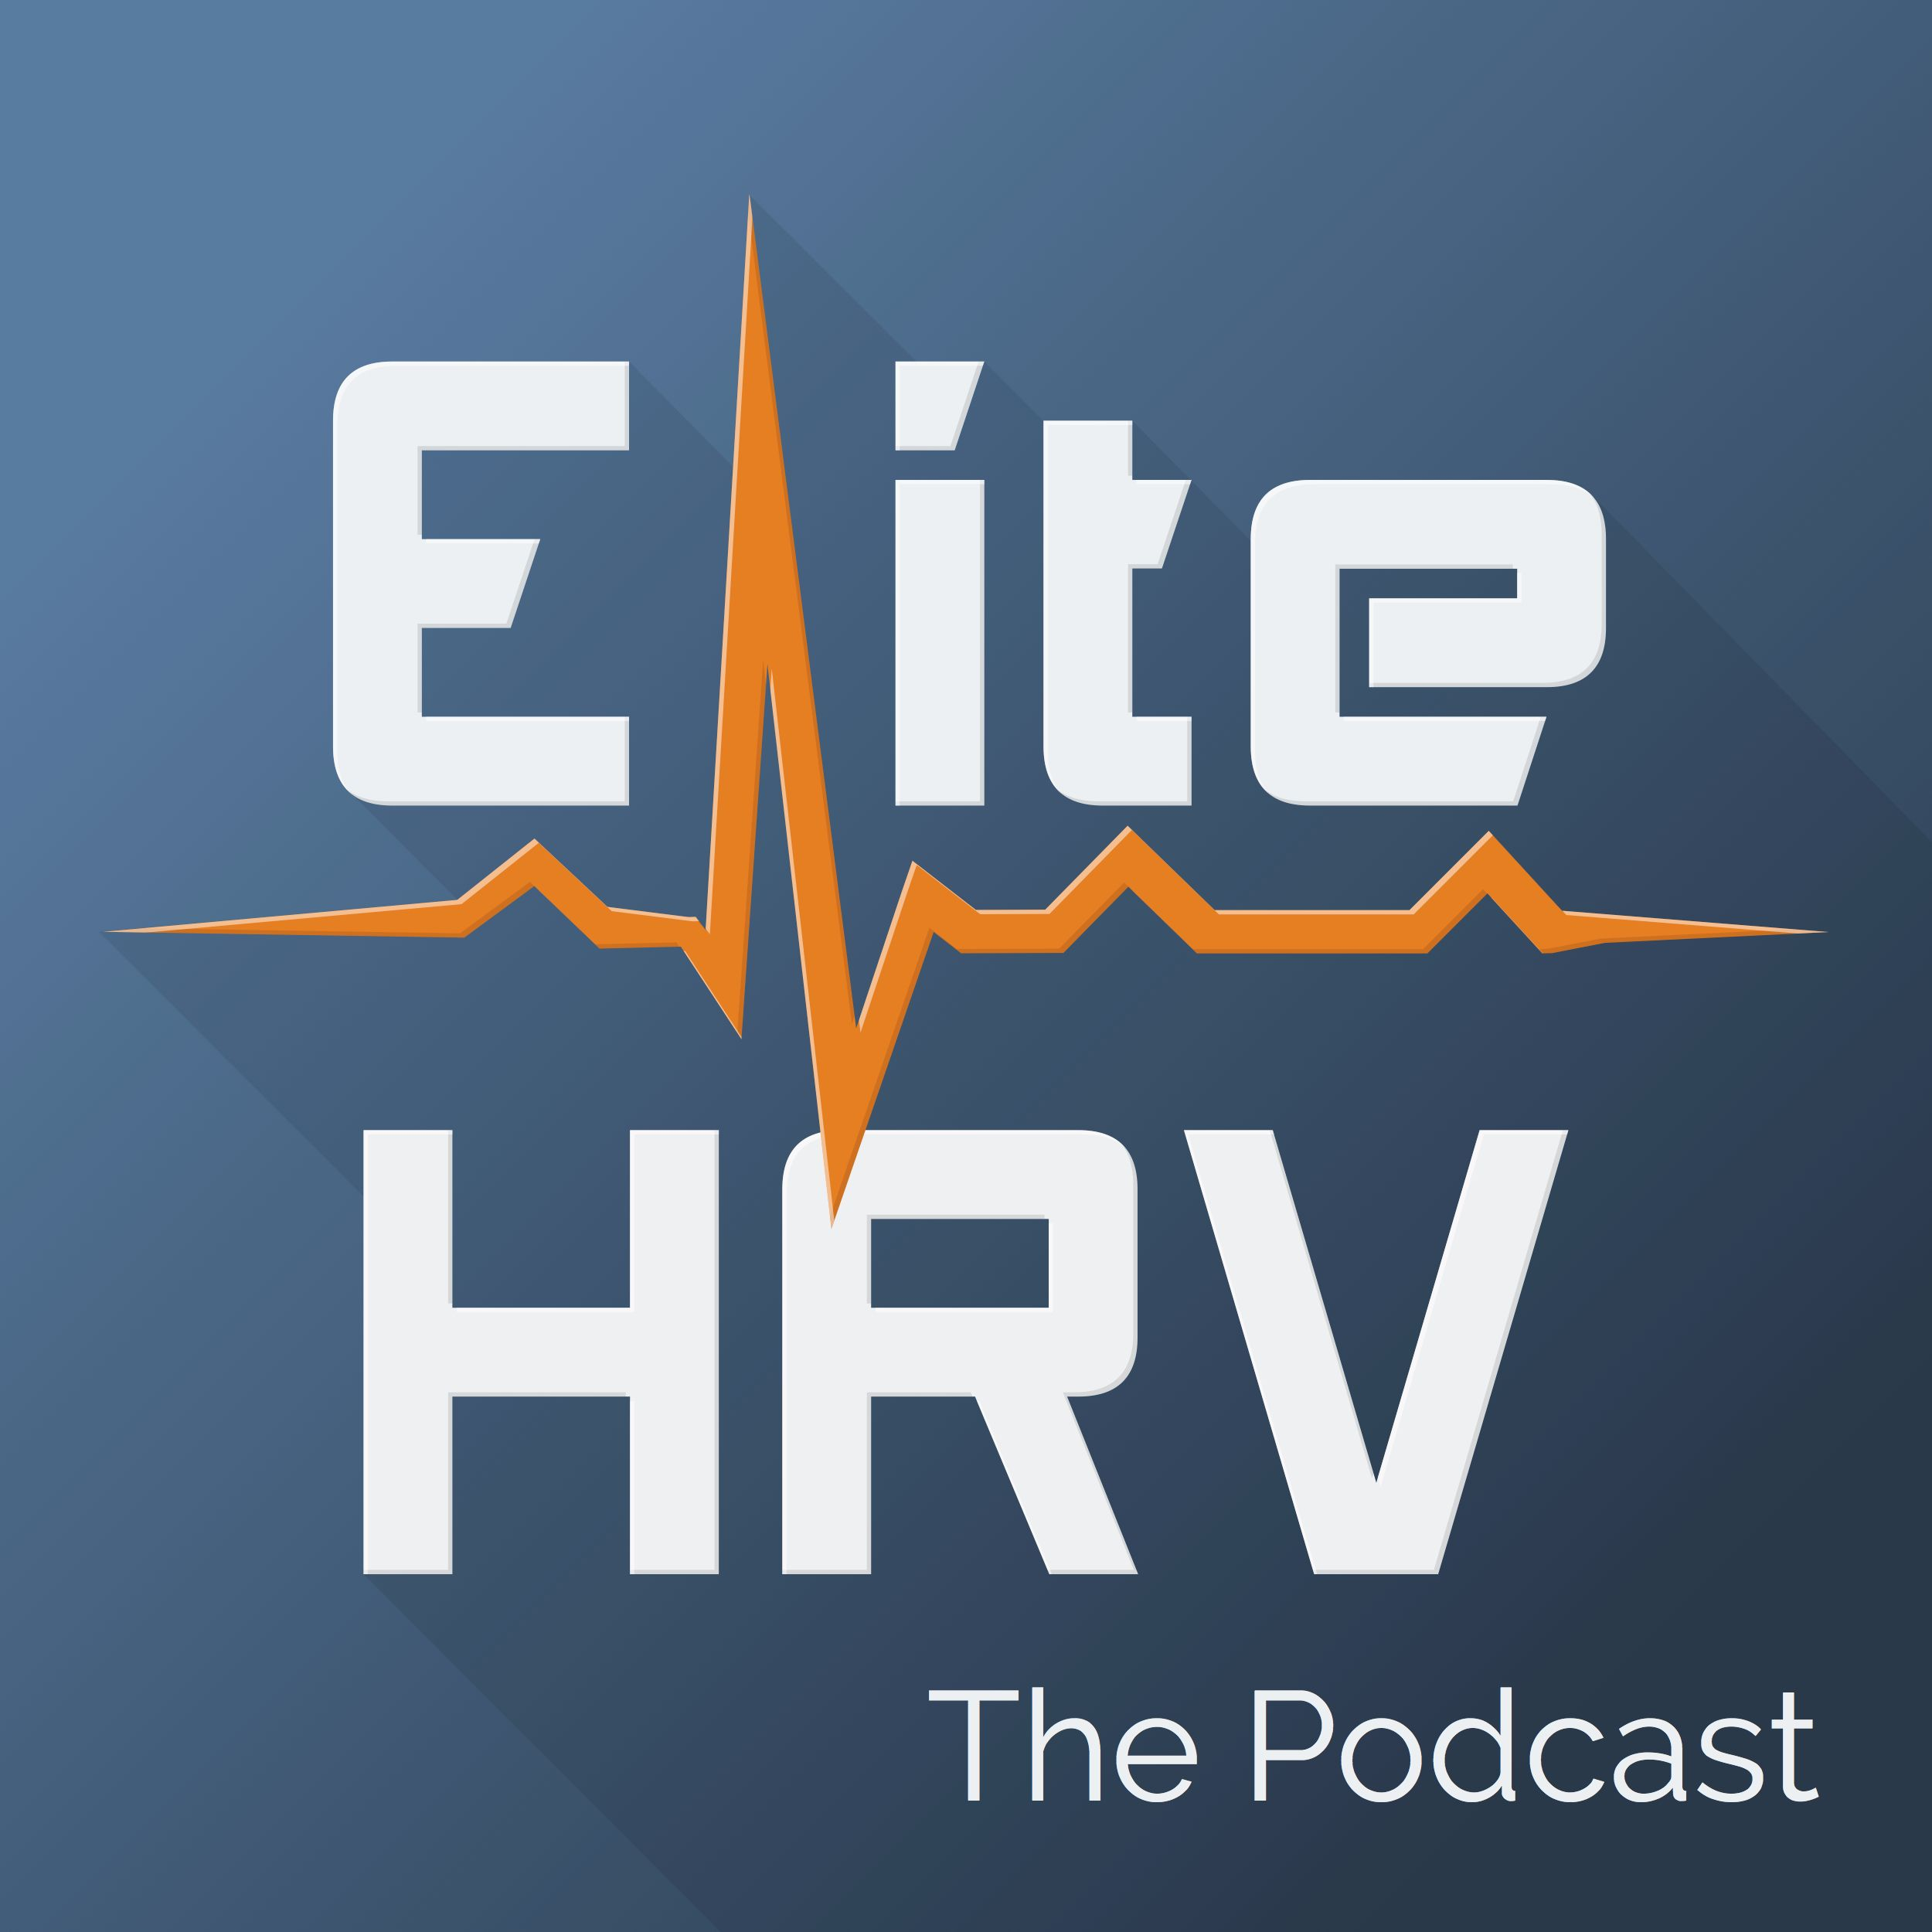 The Elite HRV Podcast: Heart Rate Variability, Biohacking Health & Performance, Quantified Self